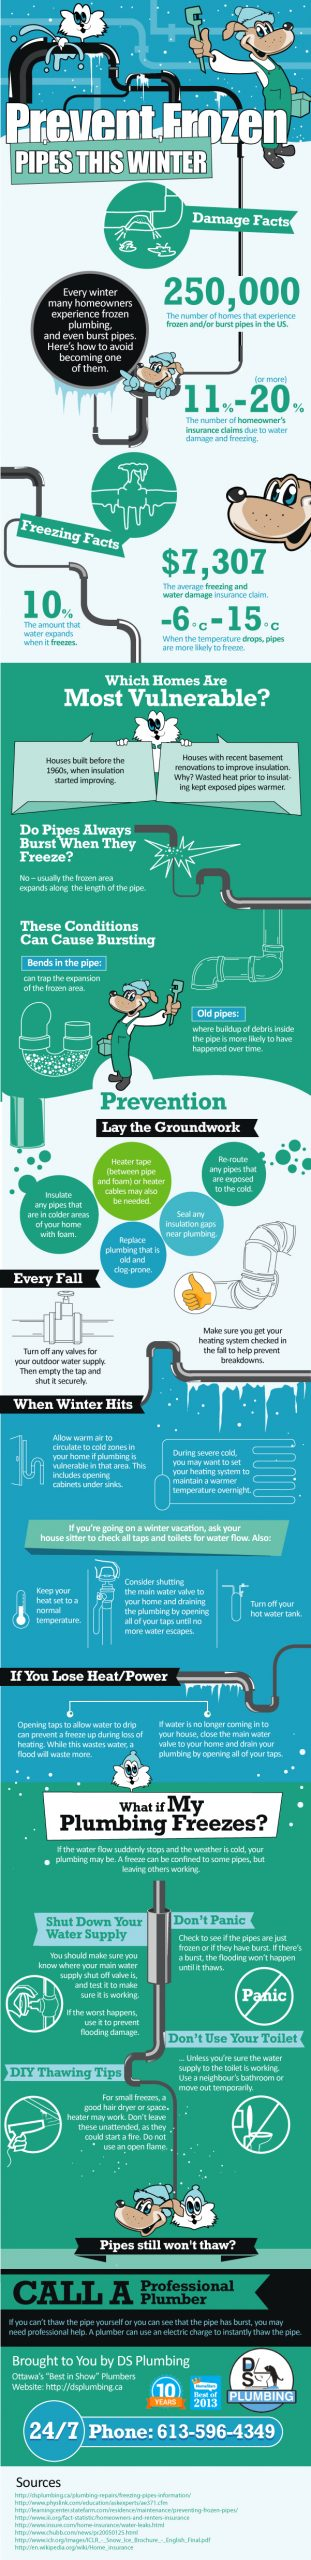 How to Prevent Frozen Pipes This Winter Infographic